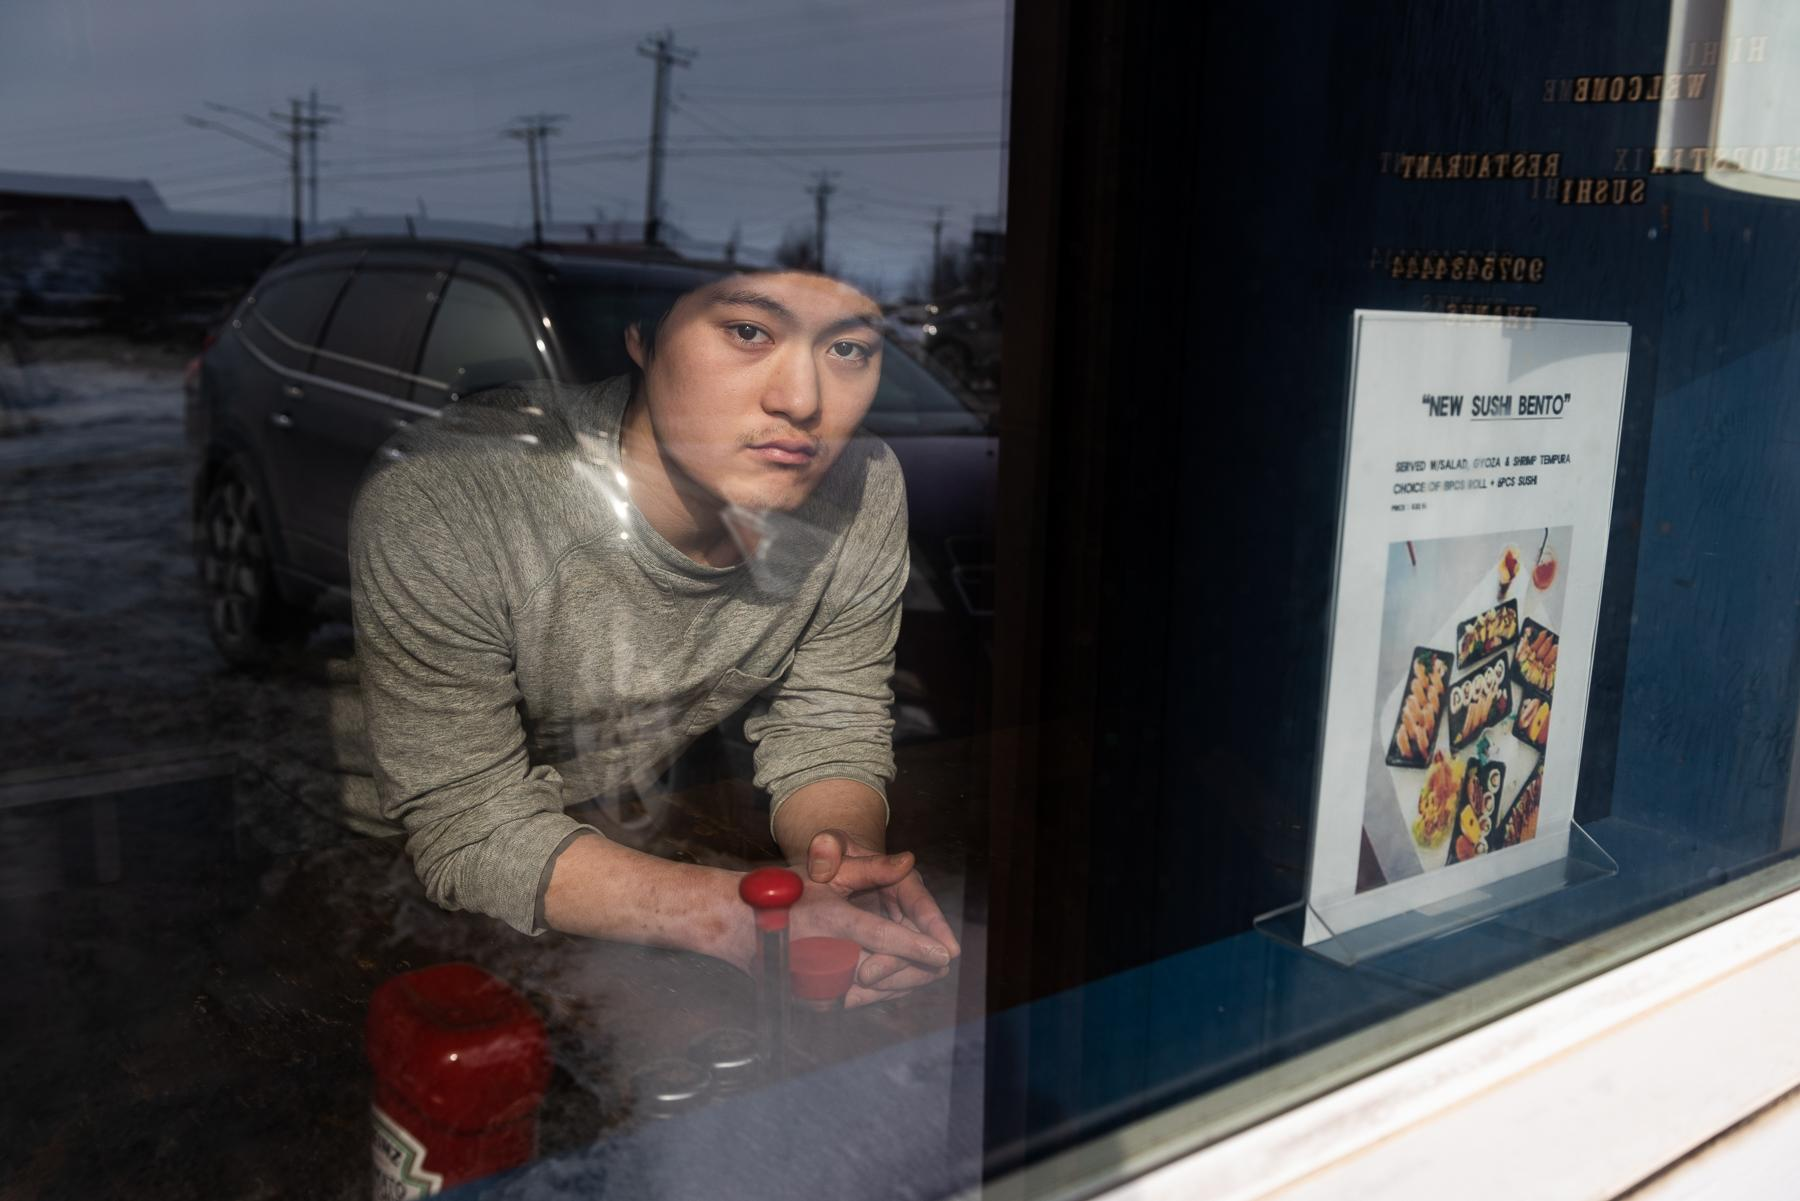 Alex Kim, owner of Chopstix Sushi Restaurant, says he may have to return to Korea if business doesn't pick-up. Bethel restaurants are in peril following mandates that restrict business to delivery and pick-up orders amidst the COVID-19 outbreak. March 31, 2020 in Bethel, Alaska.